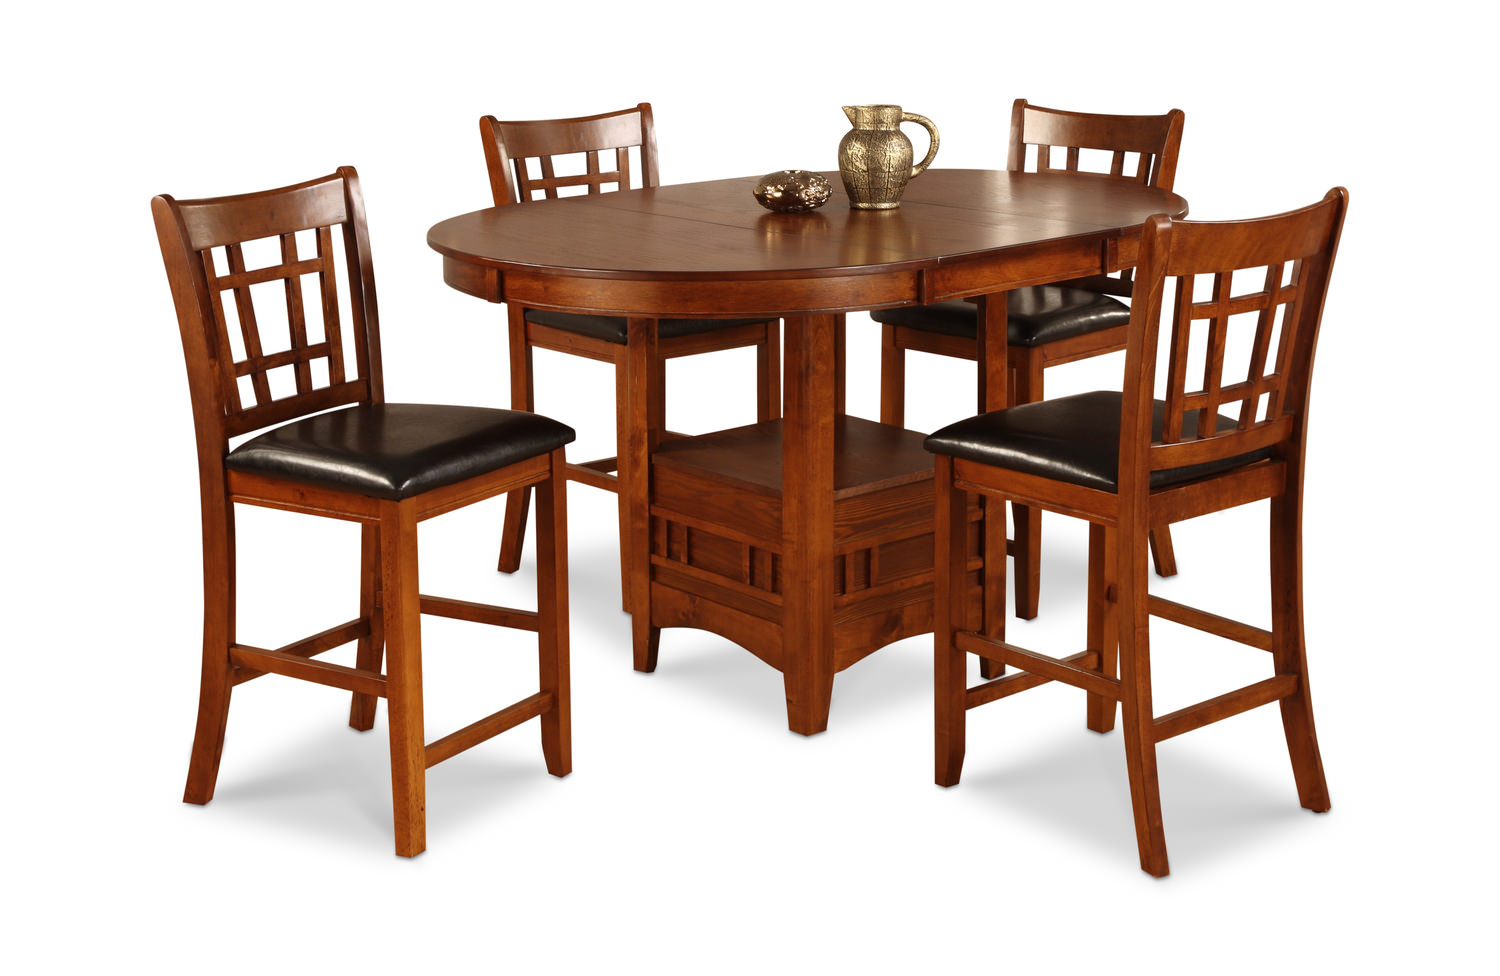 dining sets kitchen room hom furniture ave six piece fabric chair and accent table set mission park counter stools modern style narrow hall cupboard palm tree lamp inch nightstand